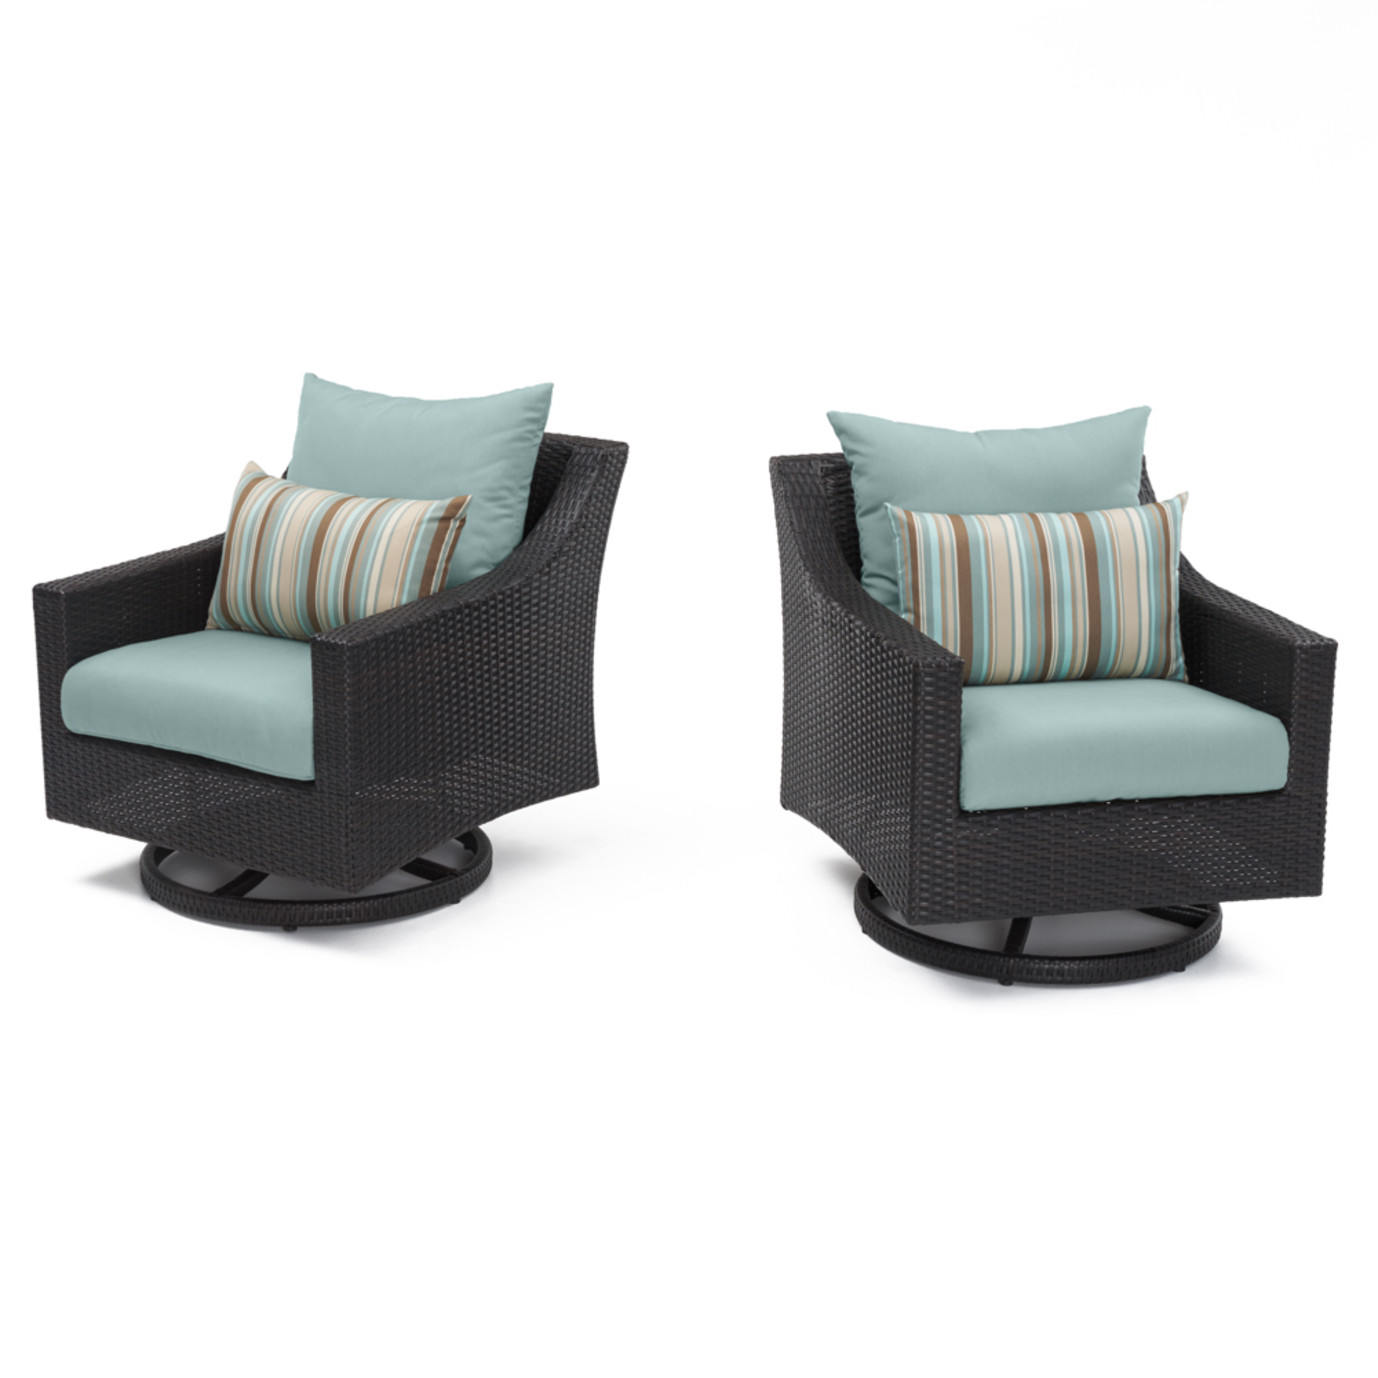 Deco™ Motion Club Chairs in Bliss Blue